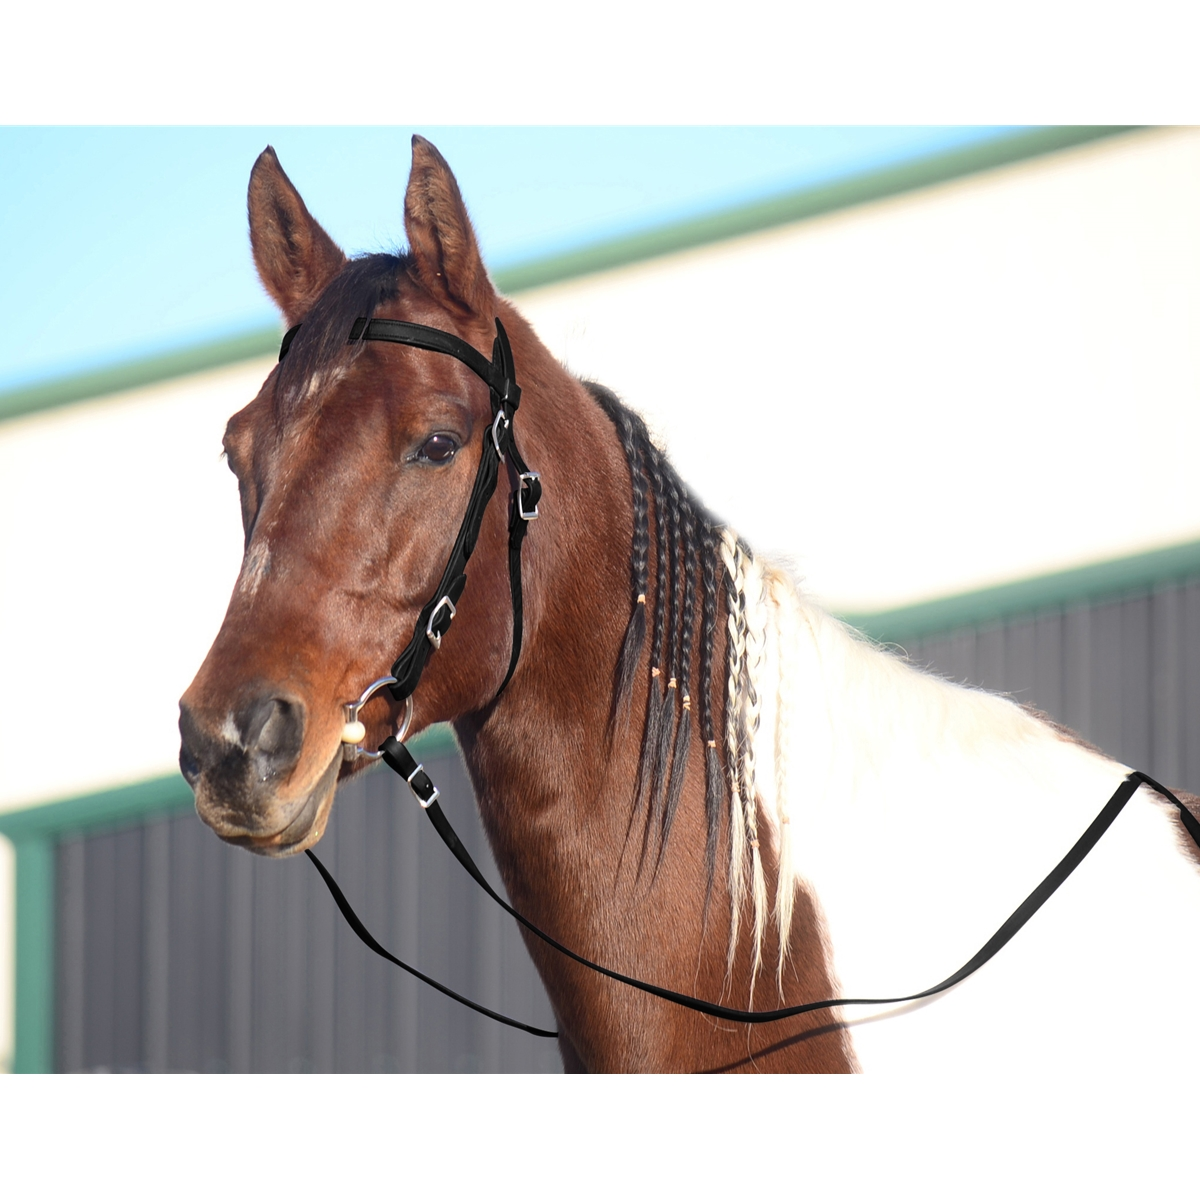 Order Black Browband Western Bridle For Horses From Two Horse Tack